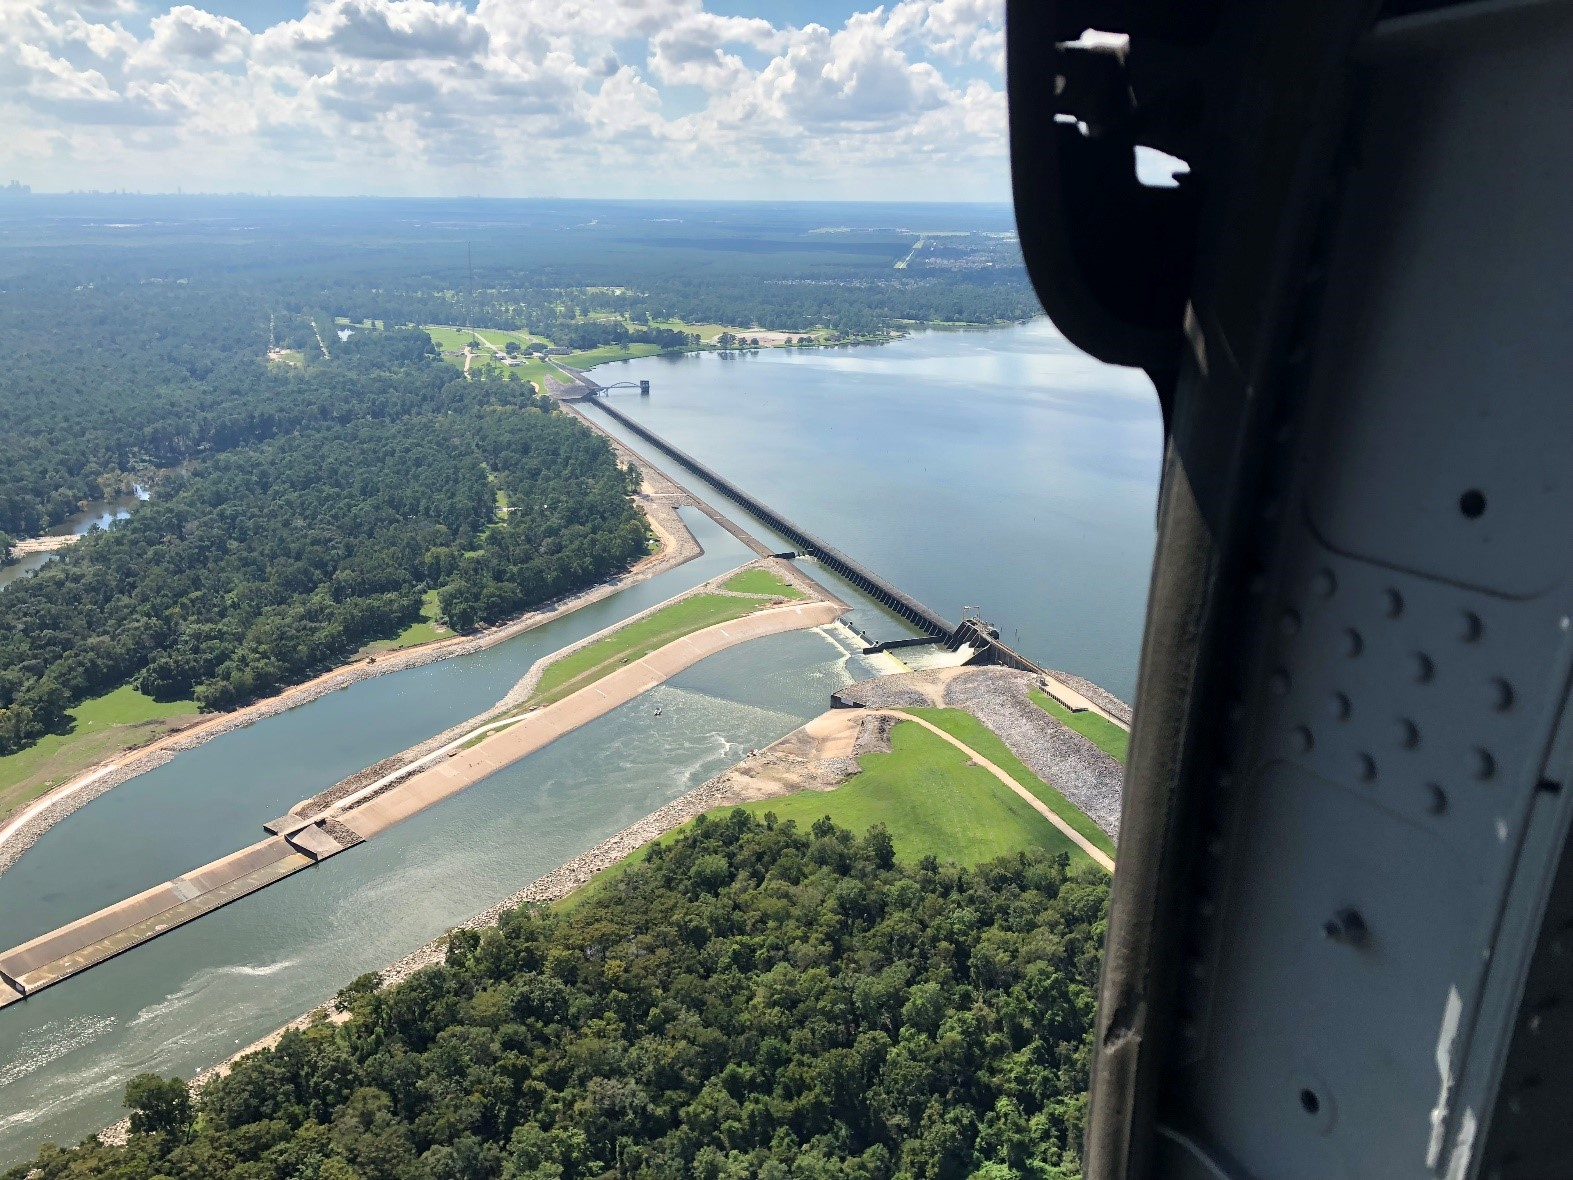 Spillway and gate at the Lake Houston Dam